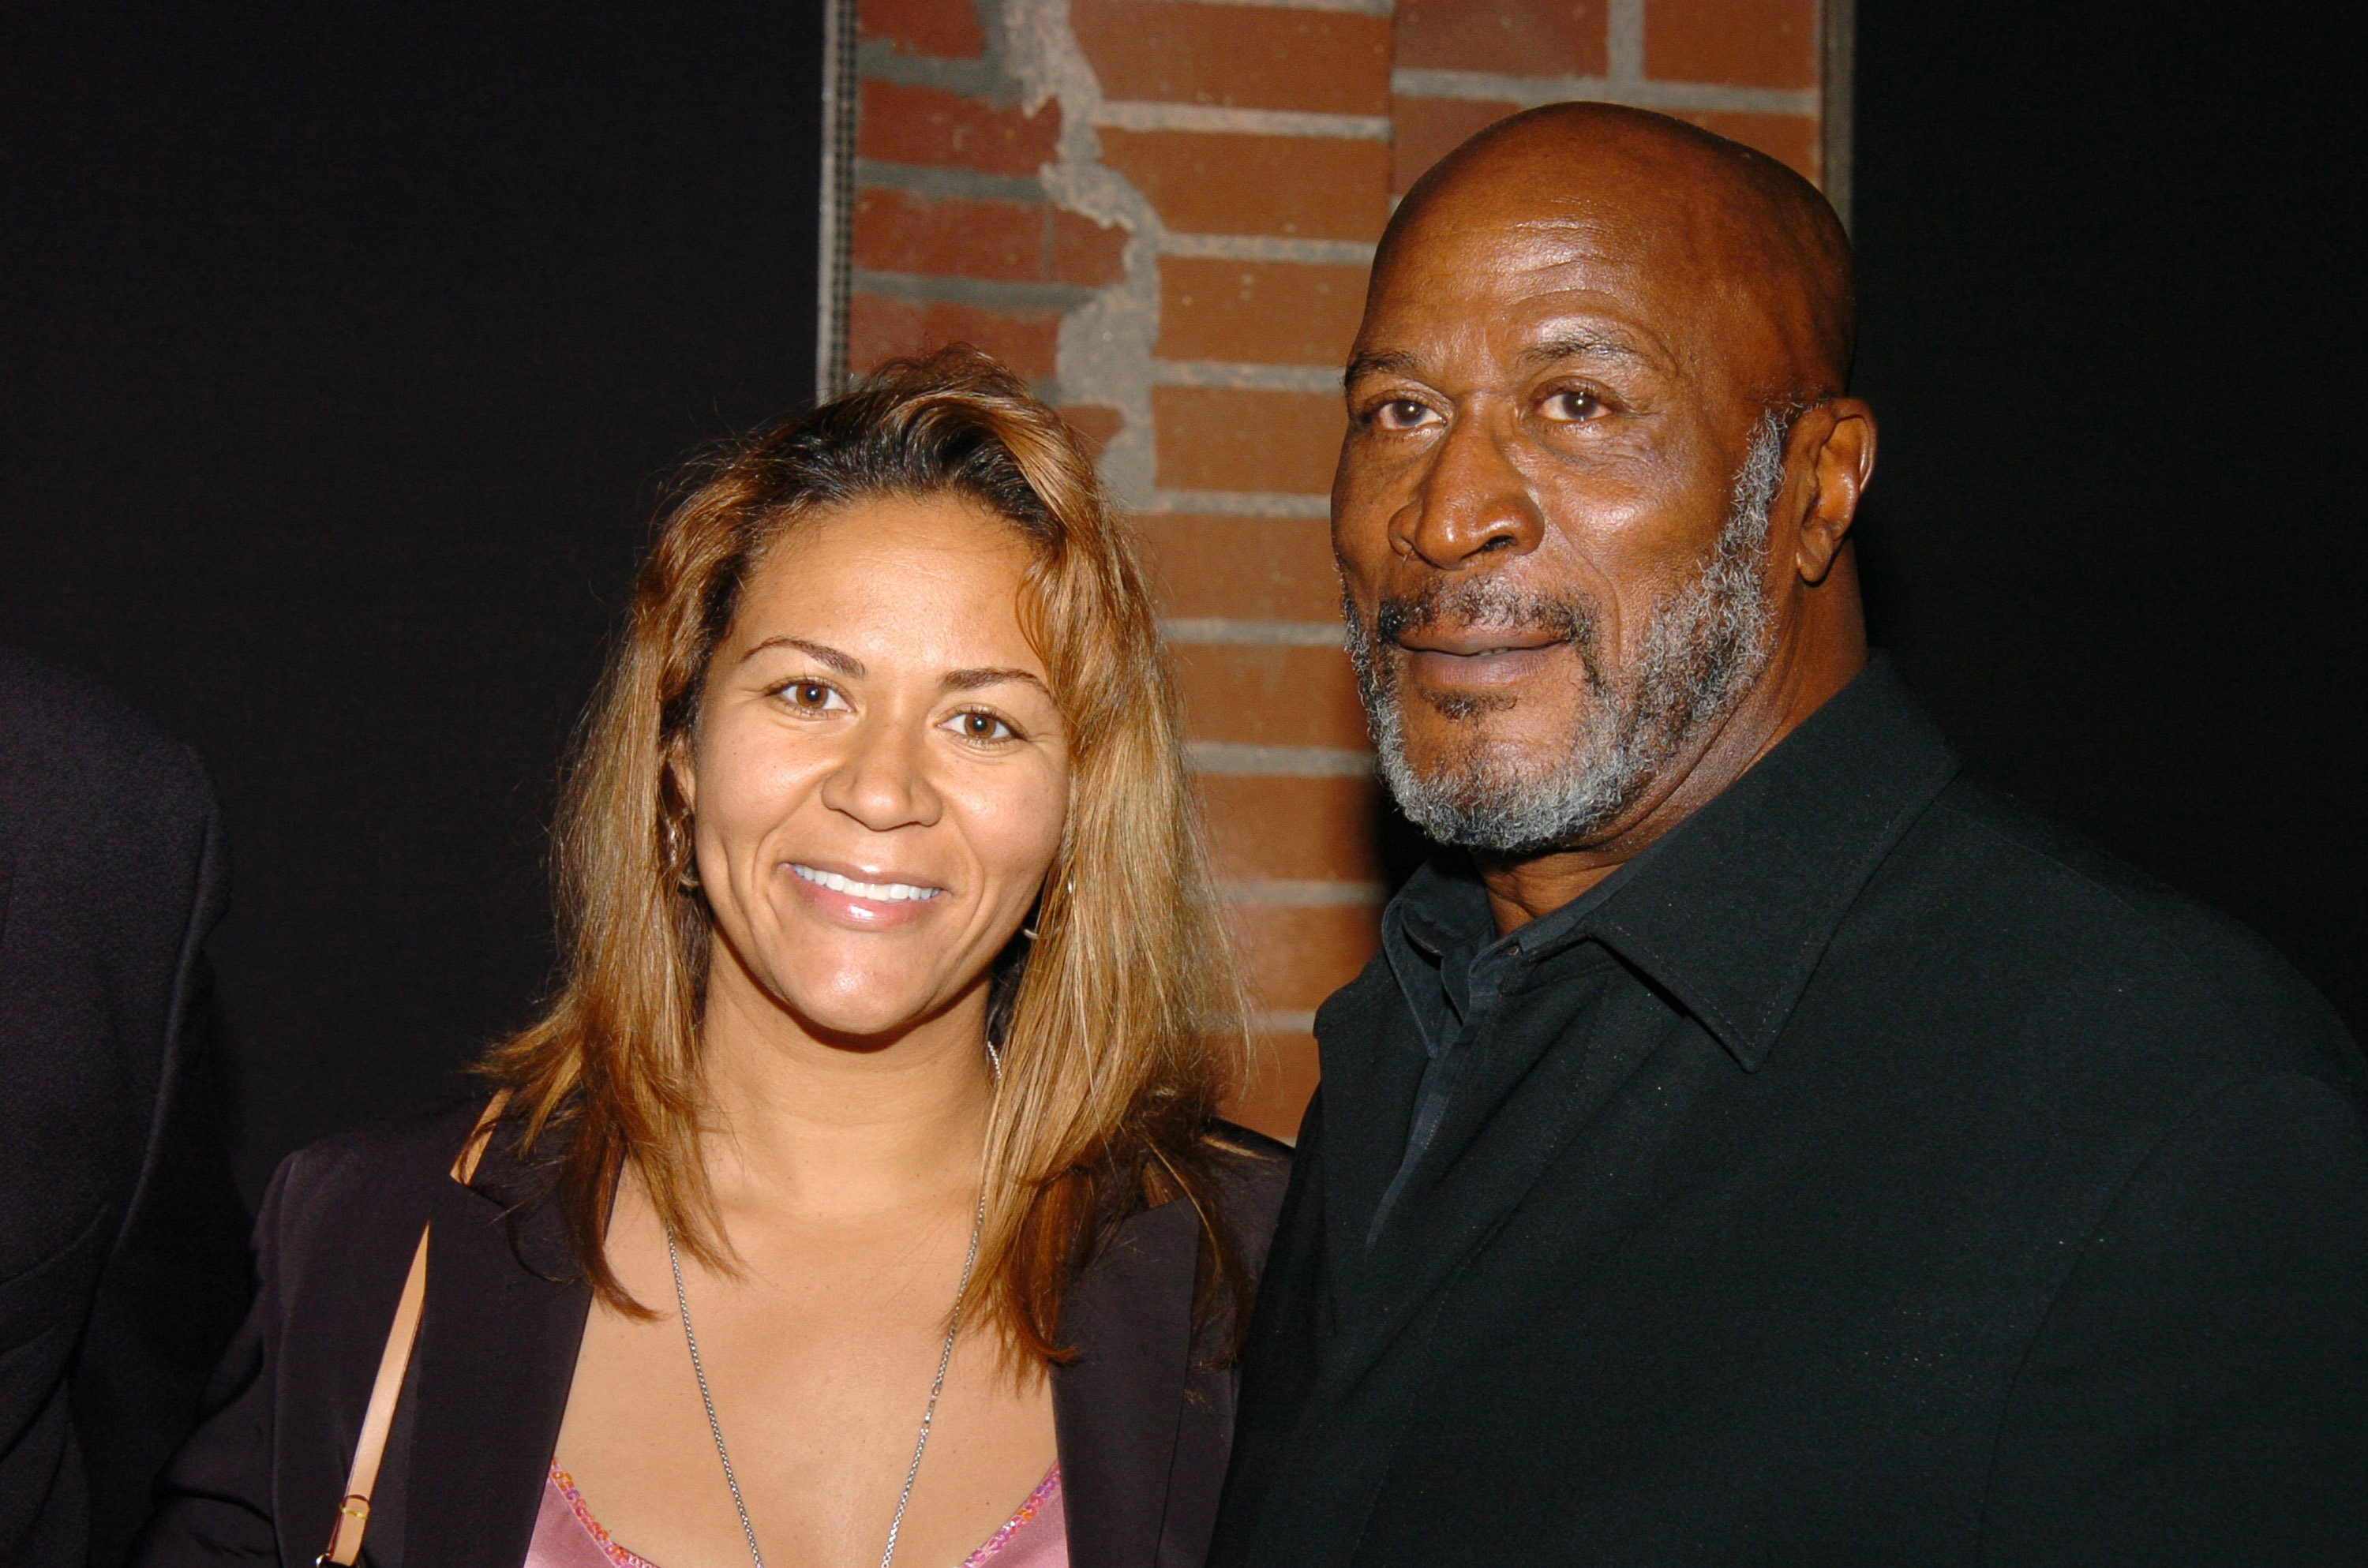 John Amos and Shannon Amos in November 2004 in Los Angeles, California | Photo: Getty Images